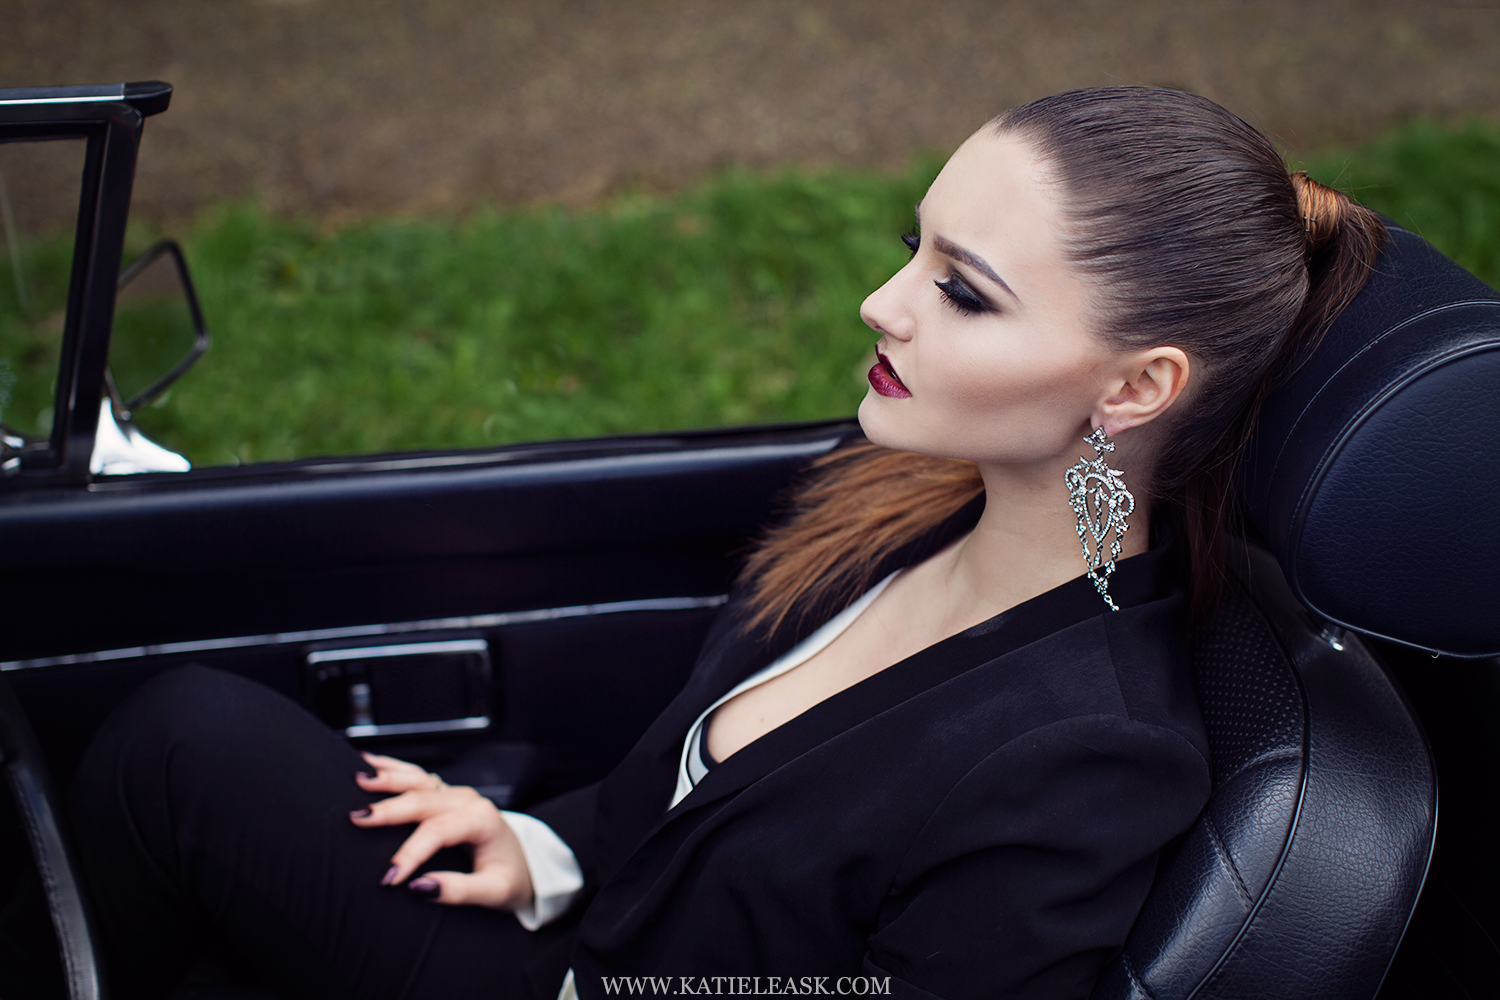 Katie-Leask-Photography-011-S